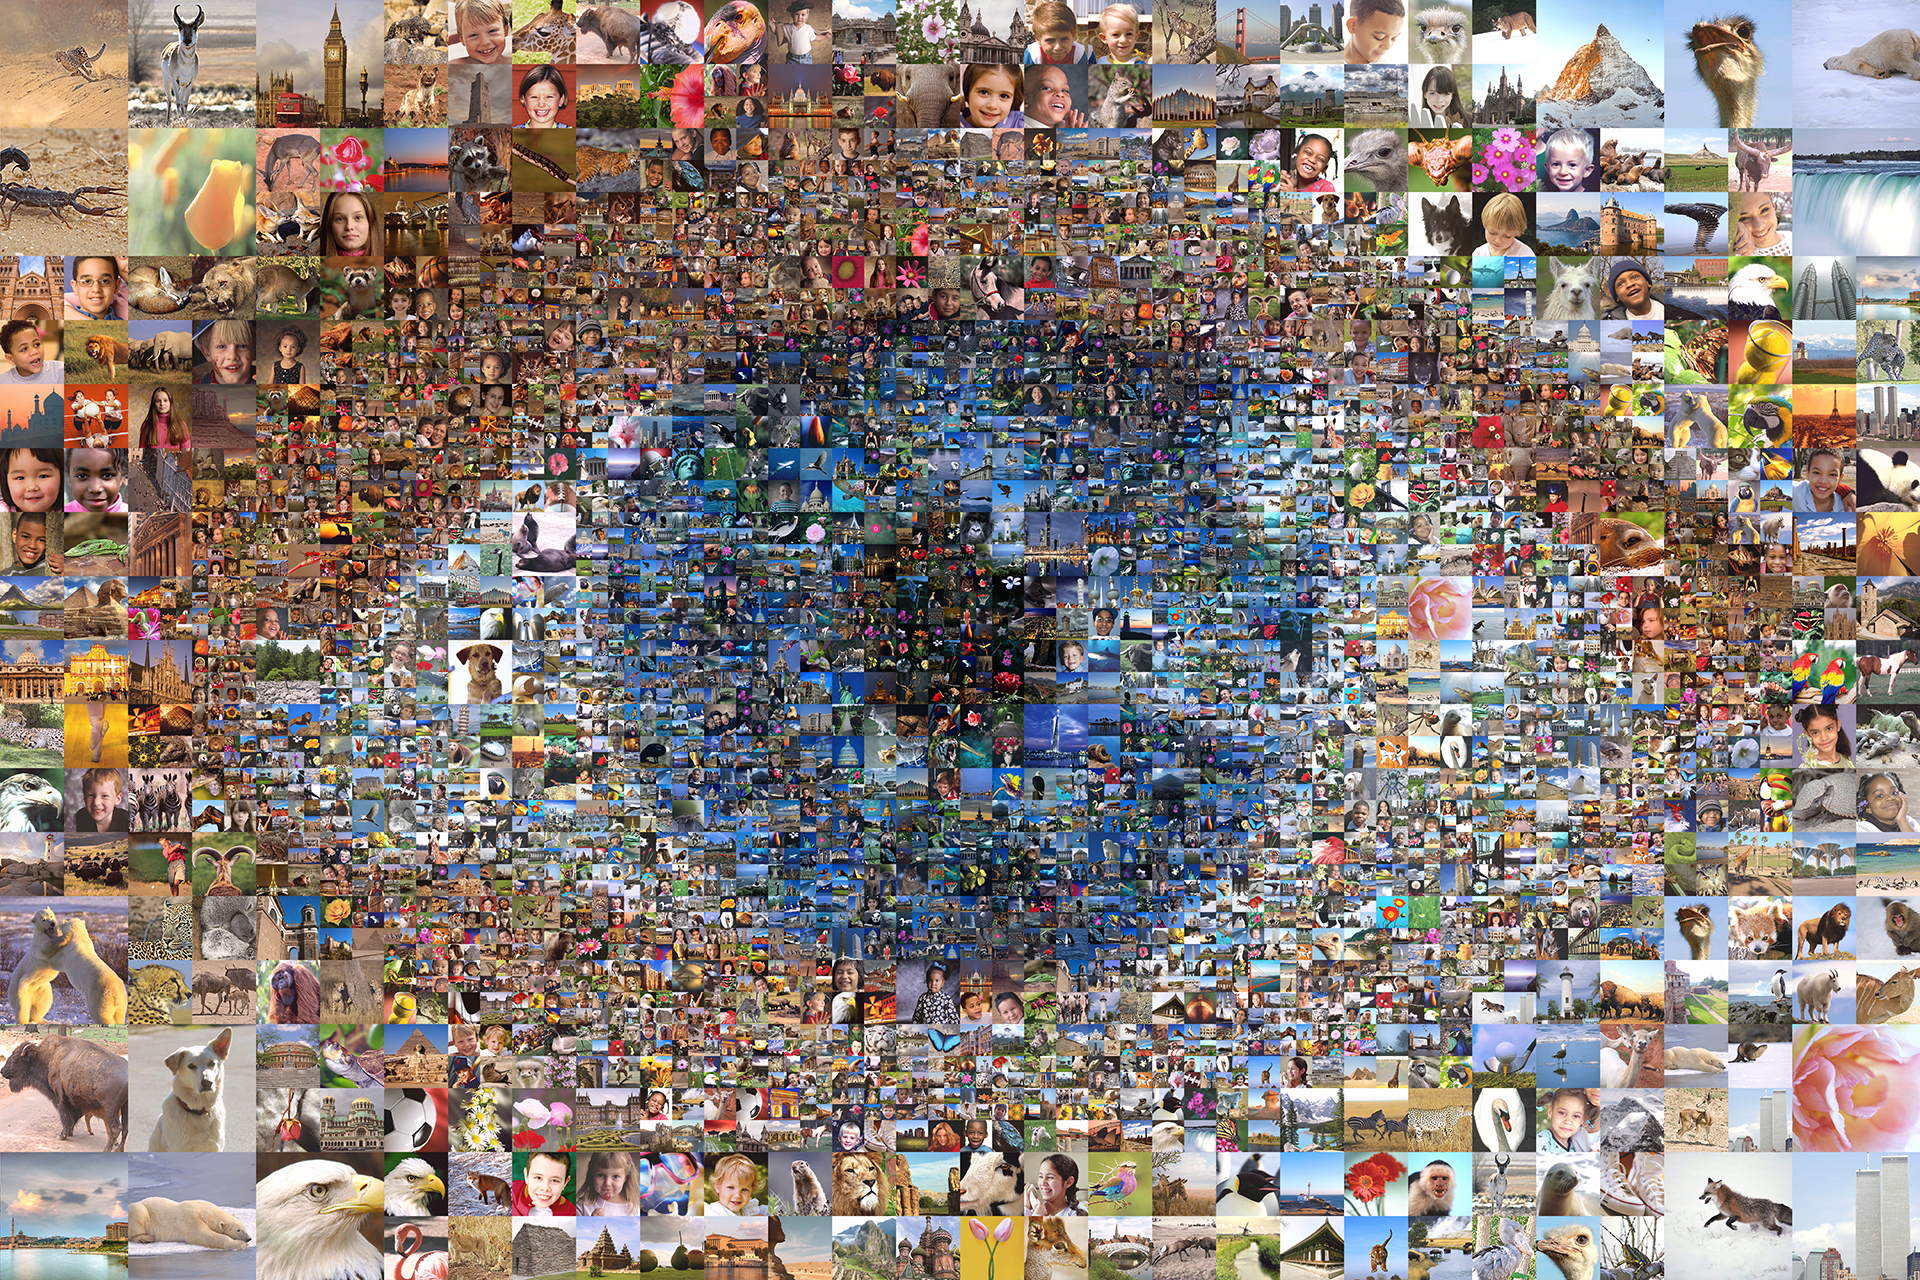 photo mosaic This eye was created using approximately 1400 photos from everyday life.